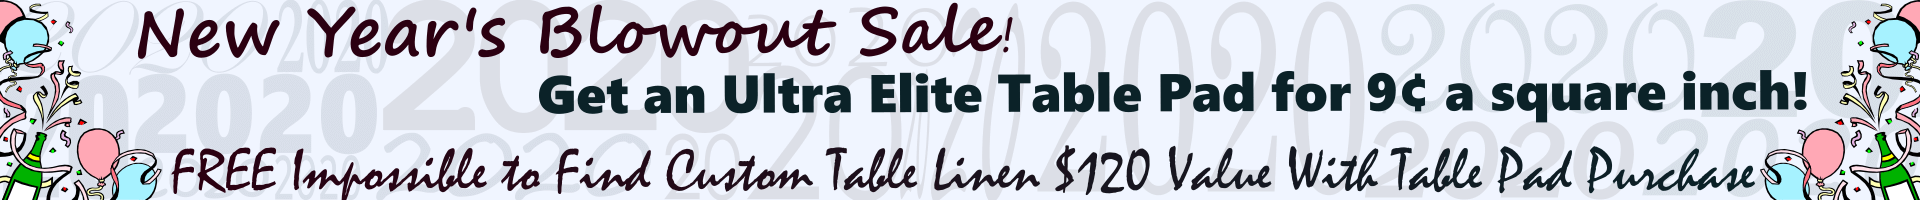 New Year's Blowout Special - Get An Ultra Elite Table Pad For 9 Cents A Square Inch